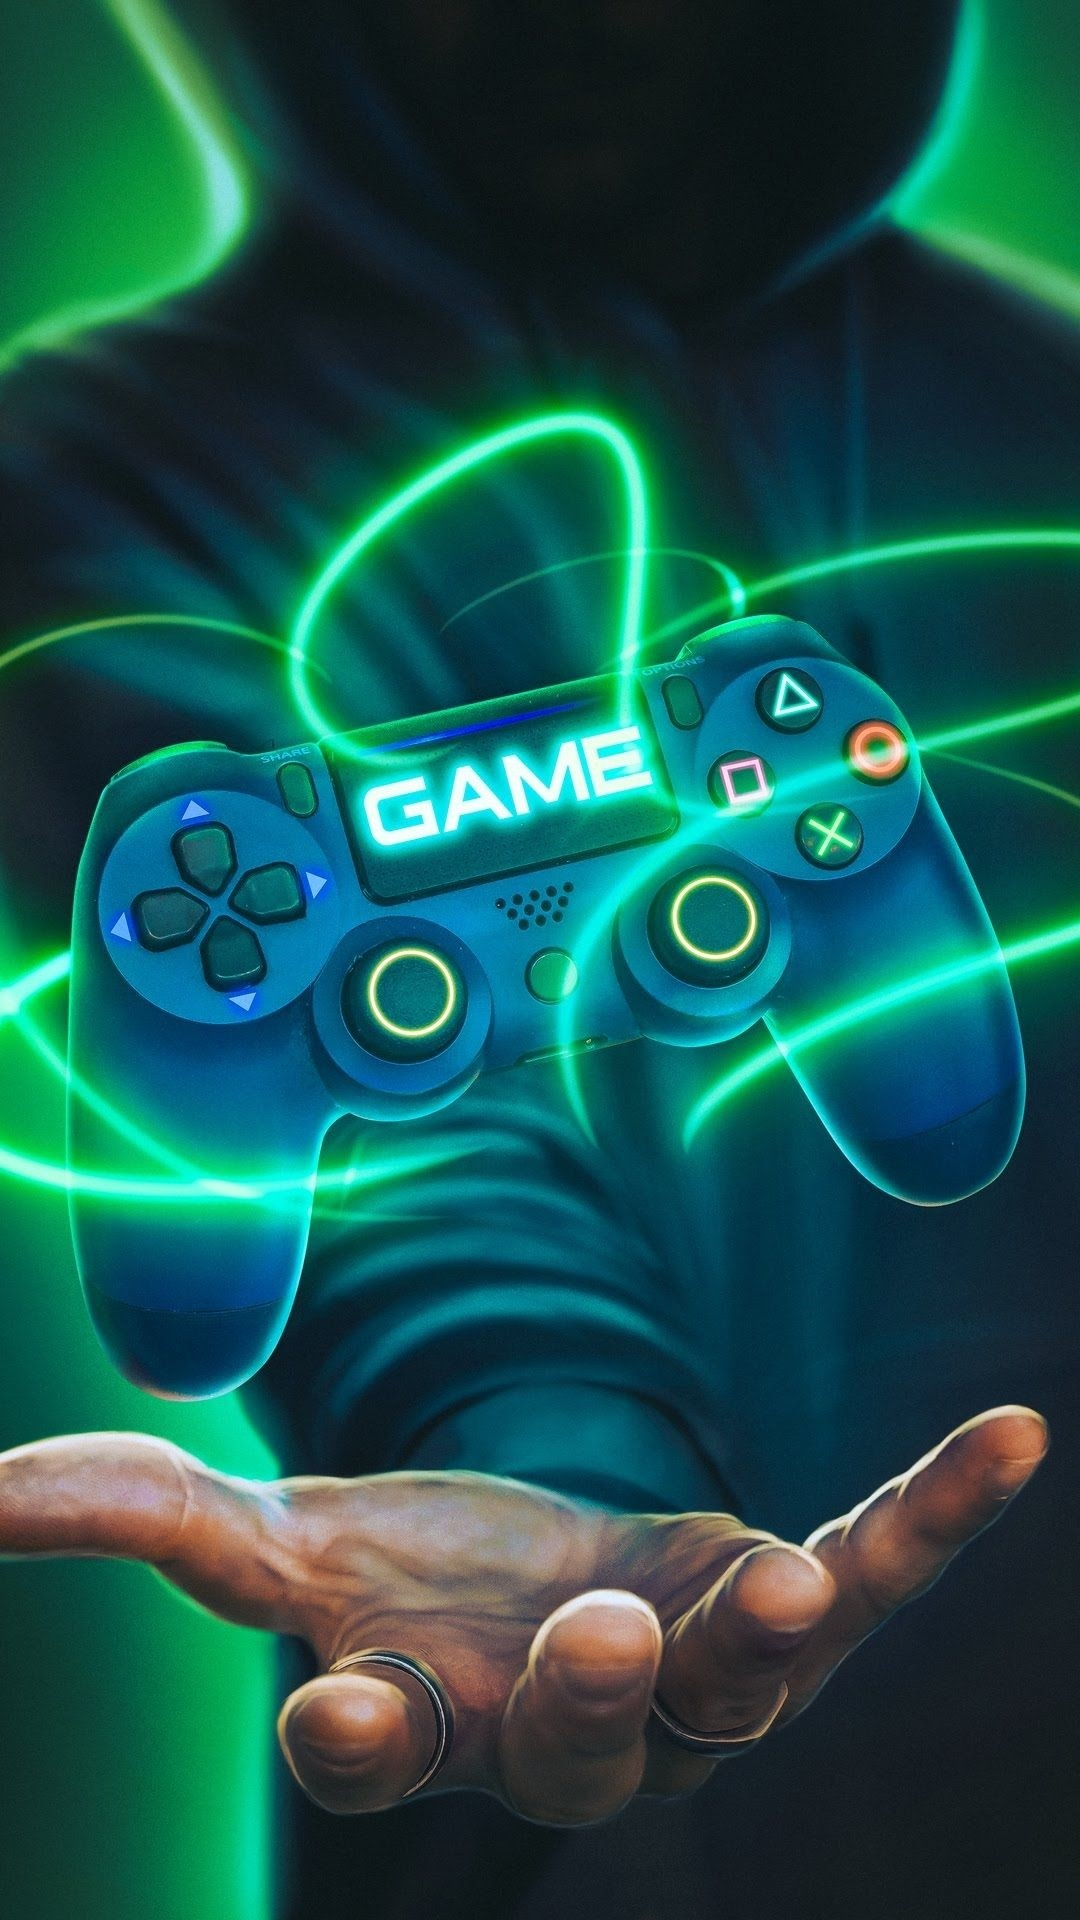 Gaming free wallpaper for android